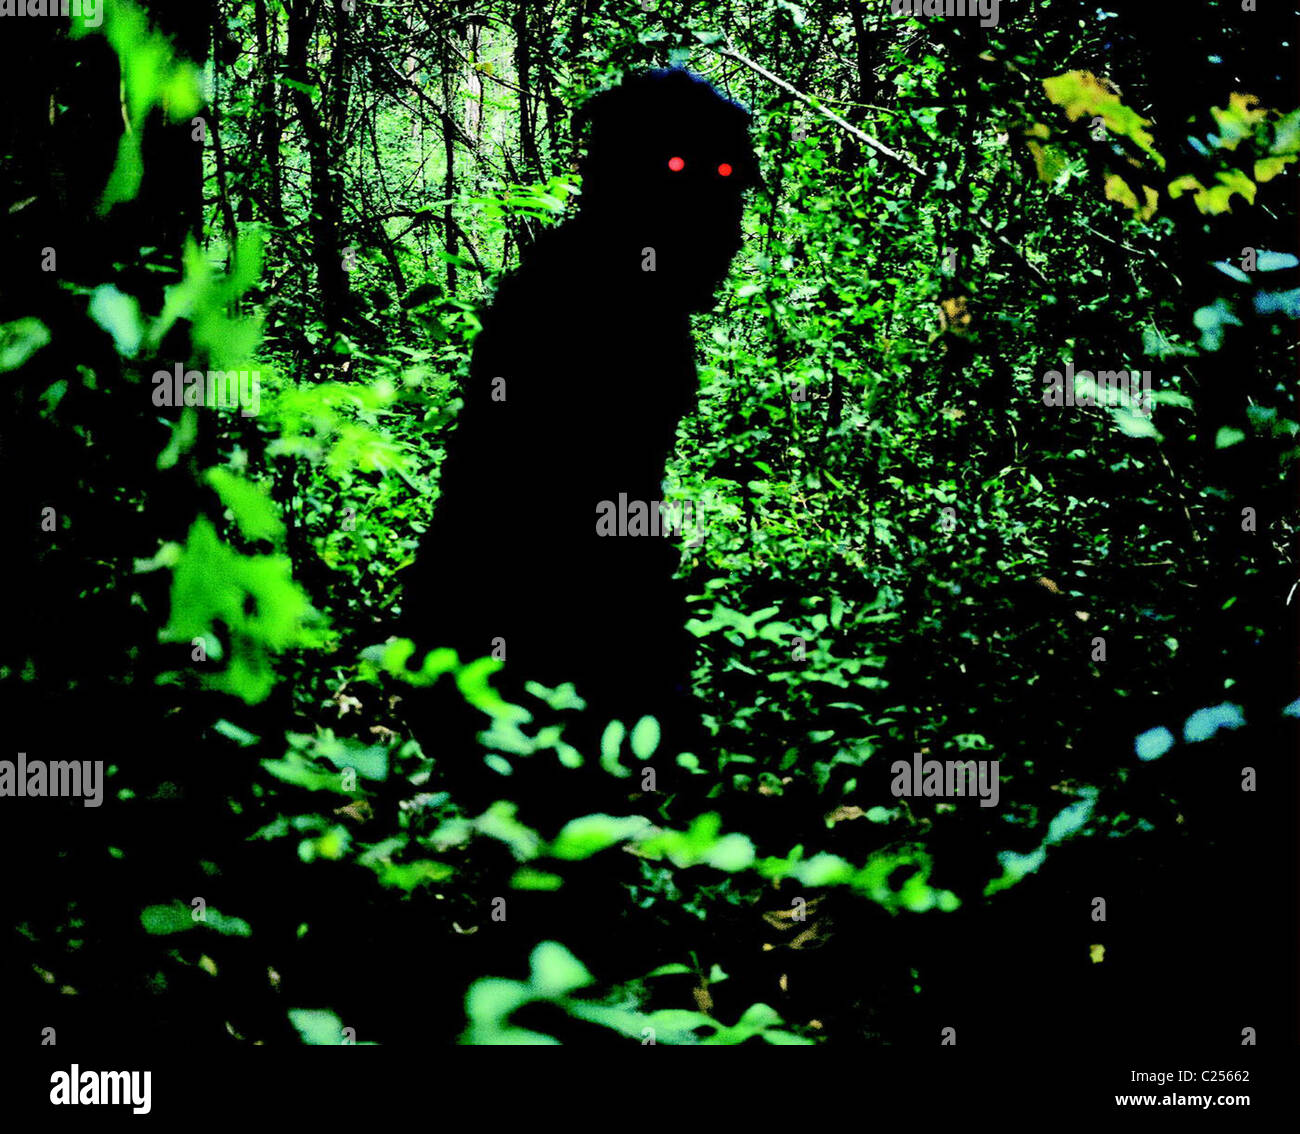 UNCLE BOONMEE WHO CAN RECALL HIS PAST LIVES (2010) LOONG BOONMEE RALEUK CHAT (ALT) APICHATPONG WEERASETHAKUL (DIR) Stock Photo